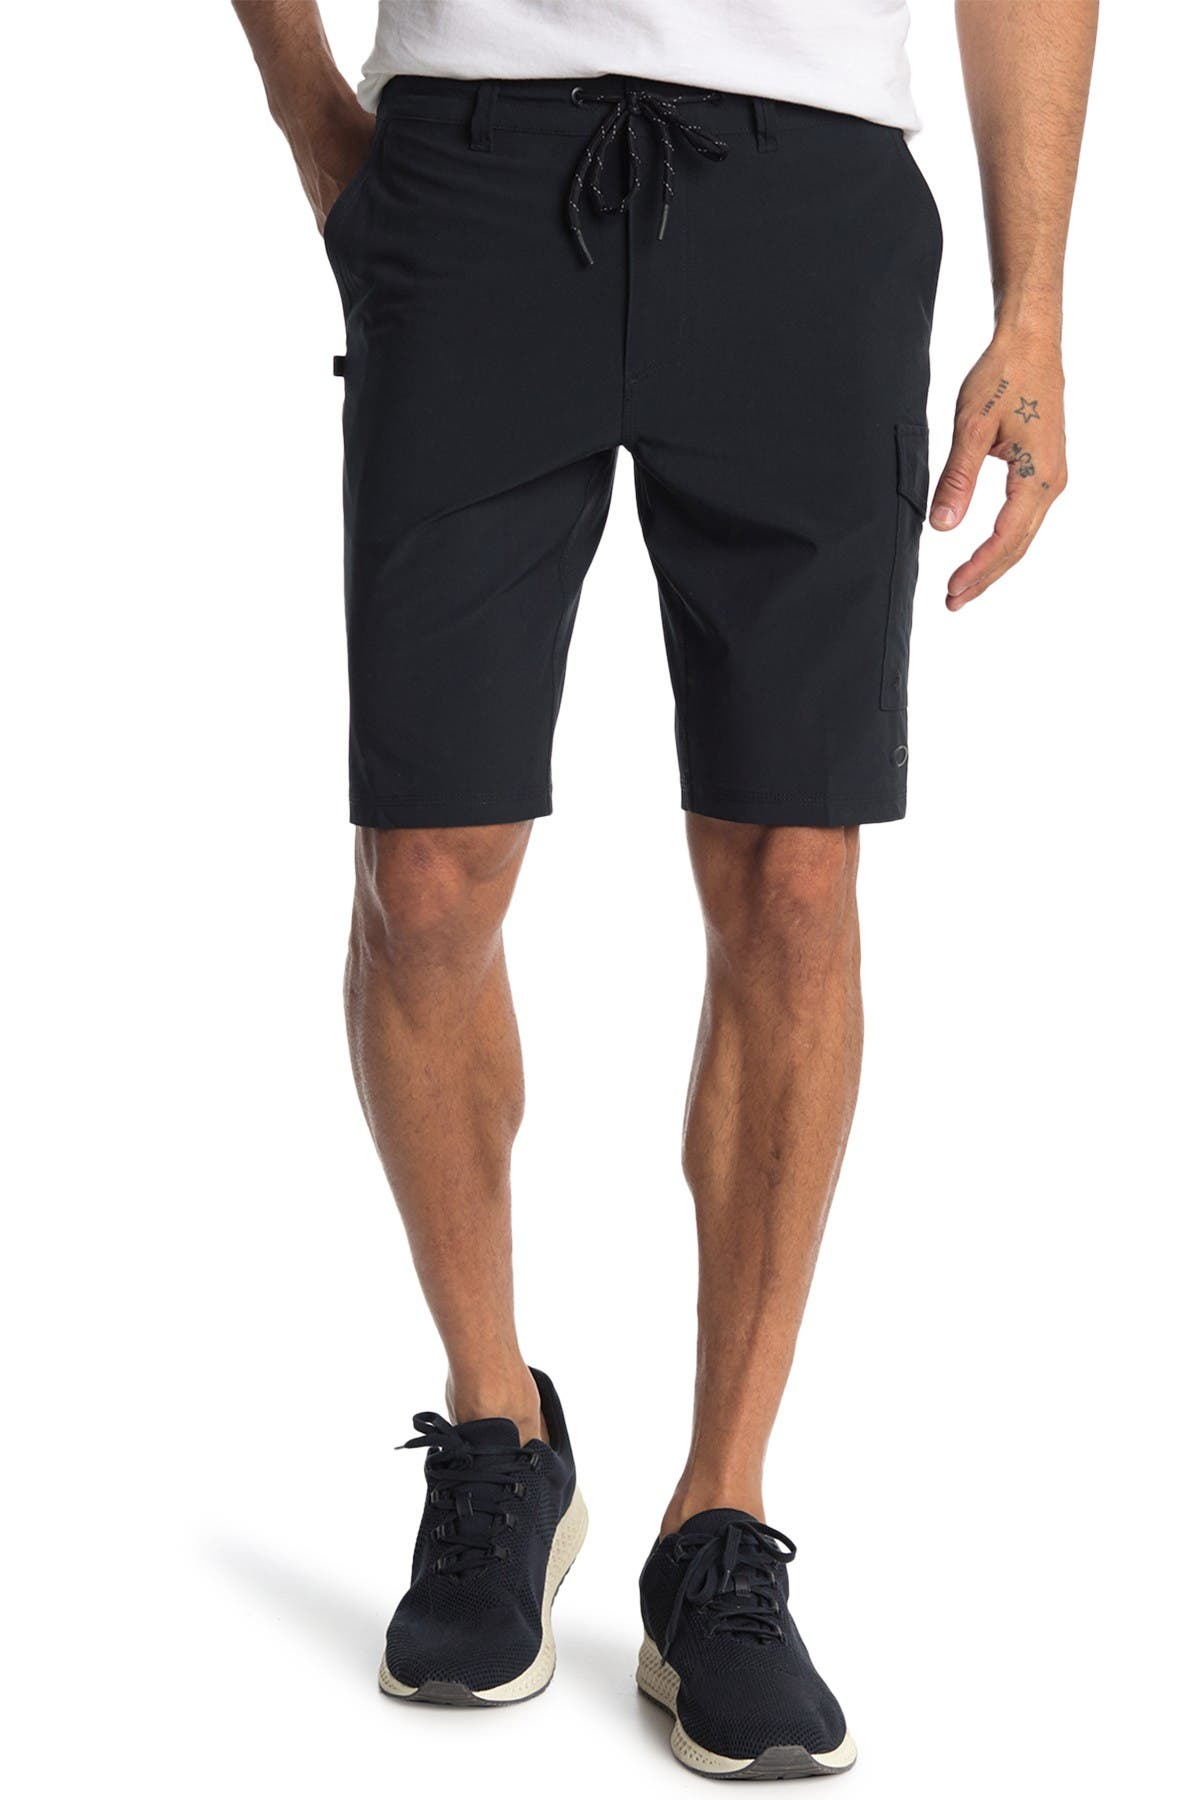 Image of Oakley Cruiser Cargo Hybrid 21 Shorts